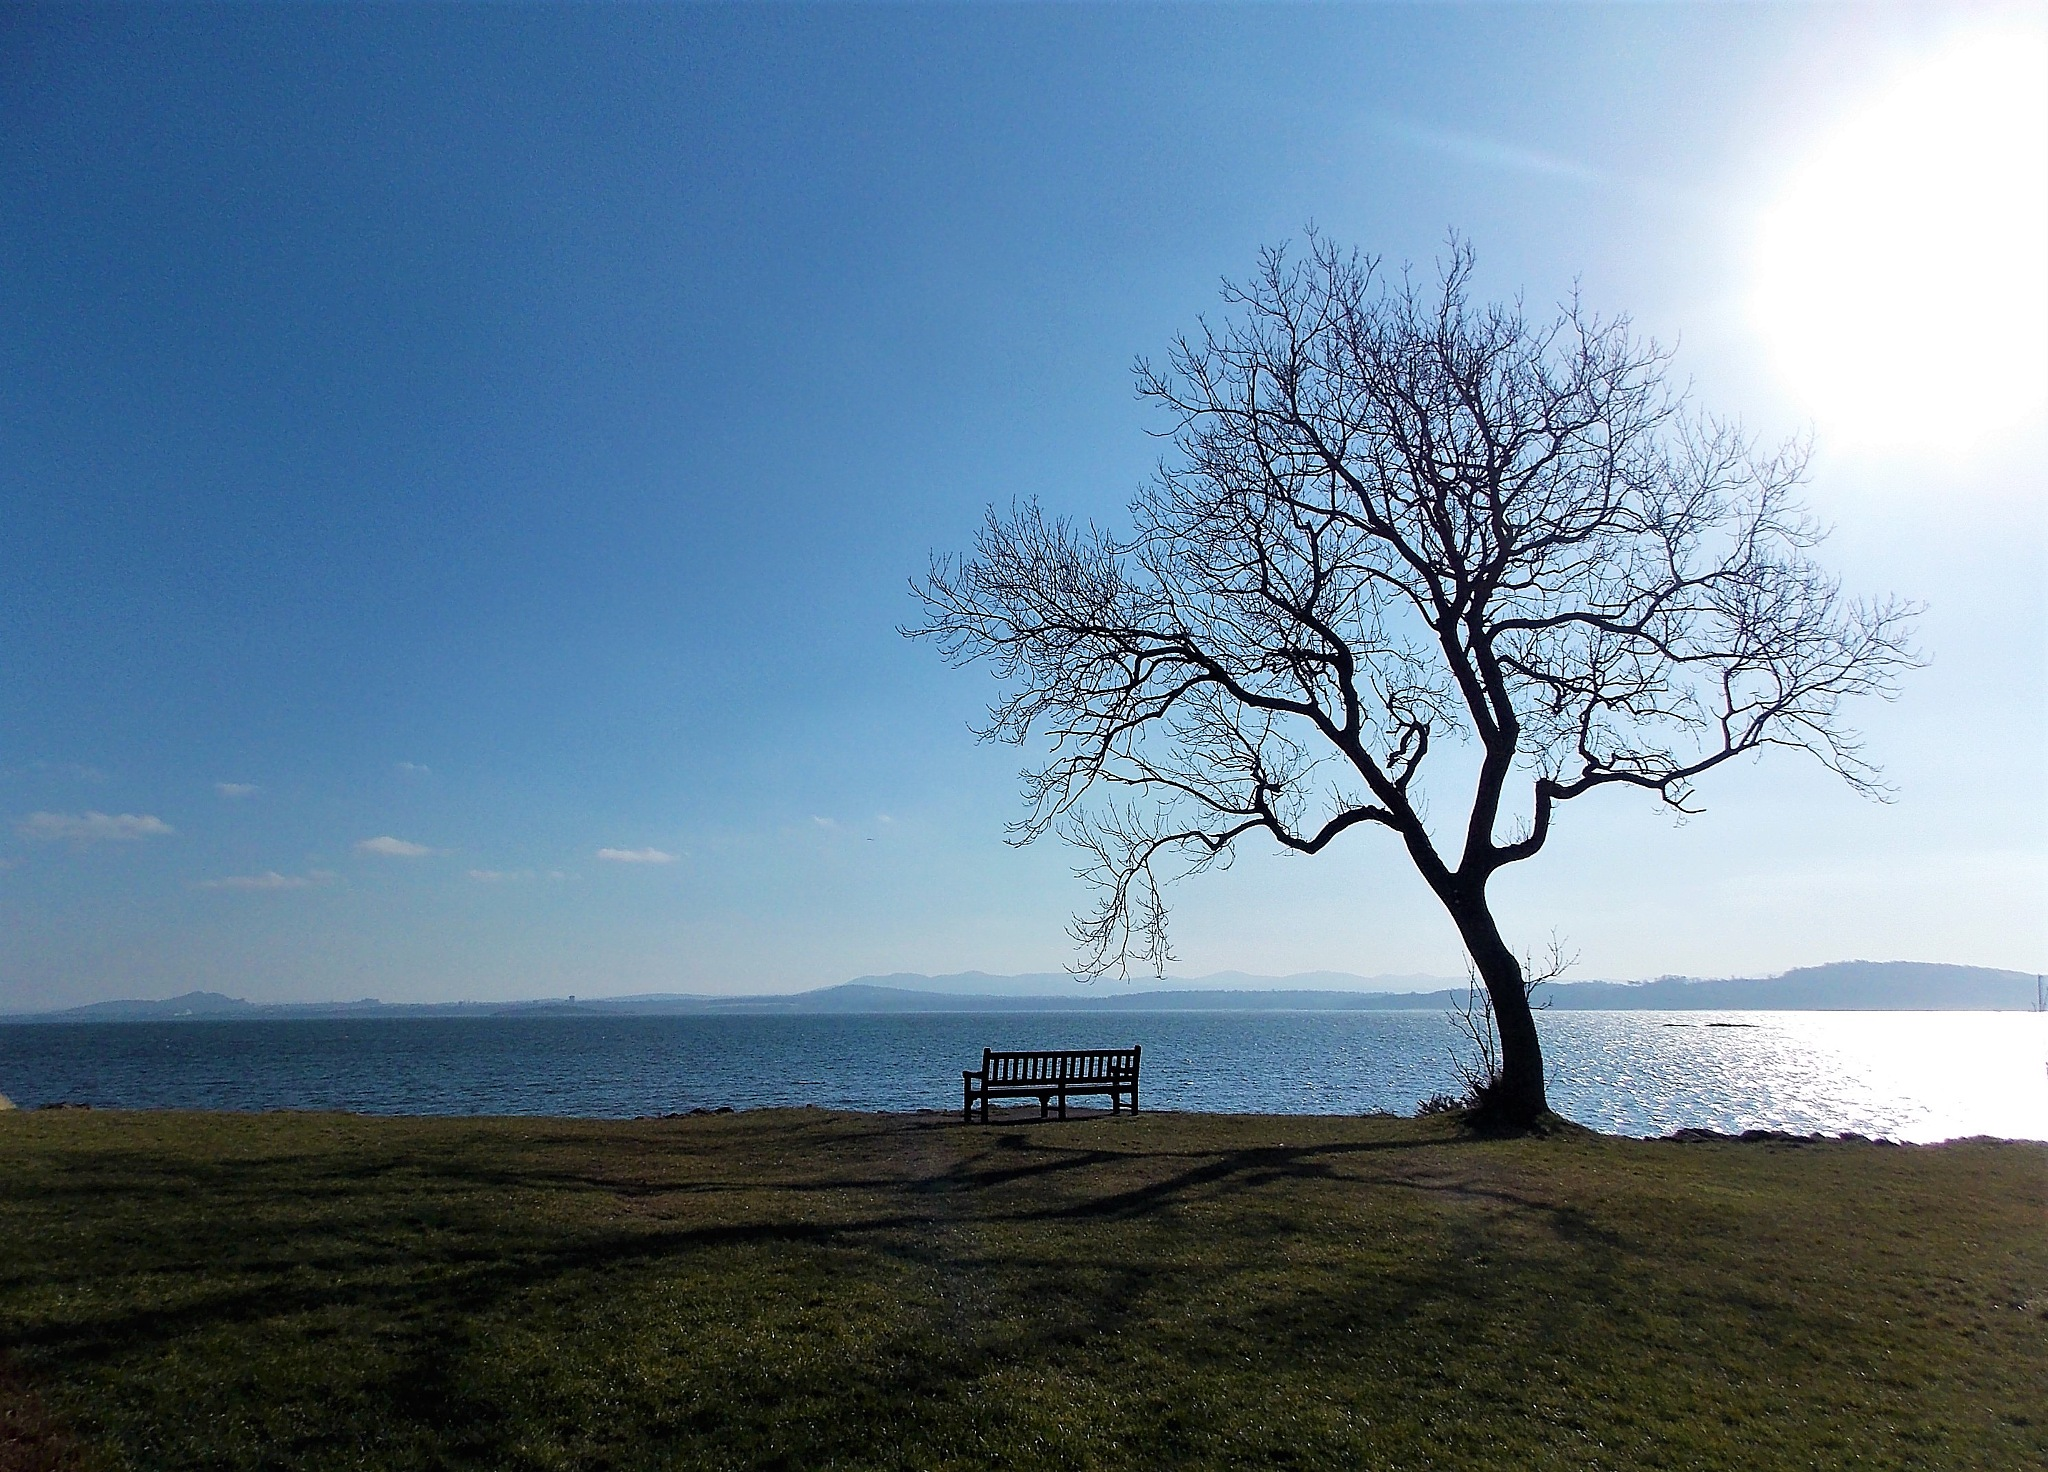 """""""Tree and Bench"""" by Thania Wehmeyer"""